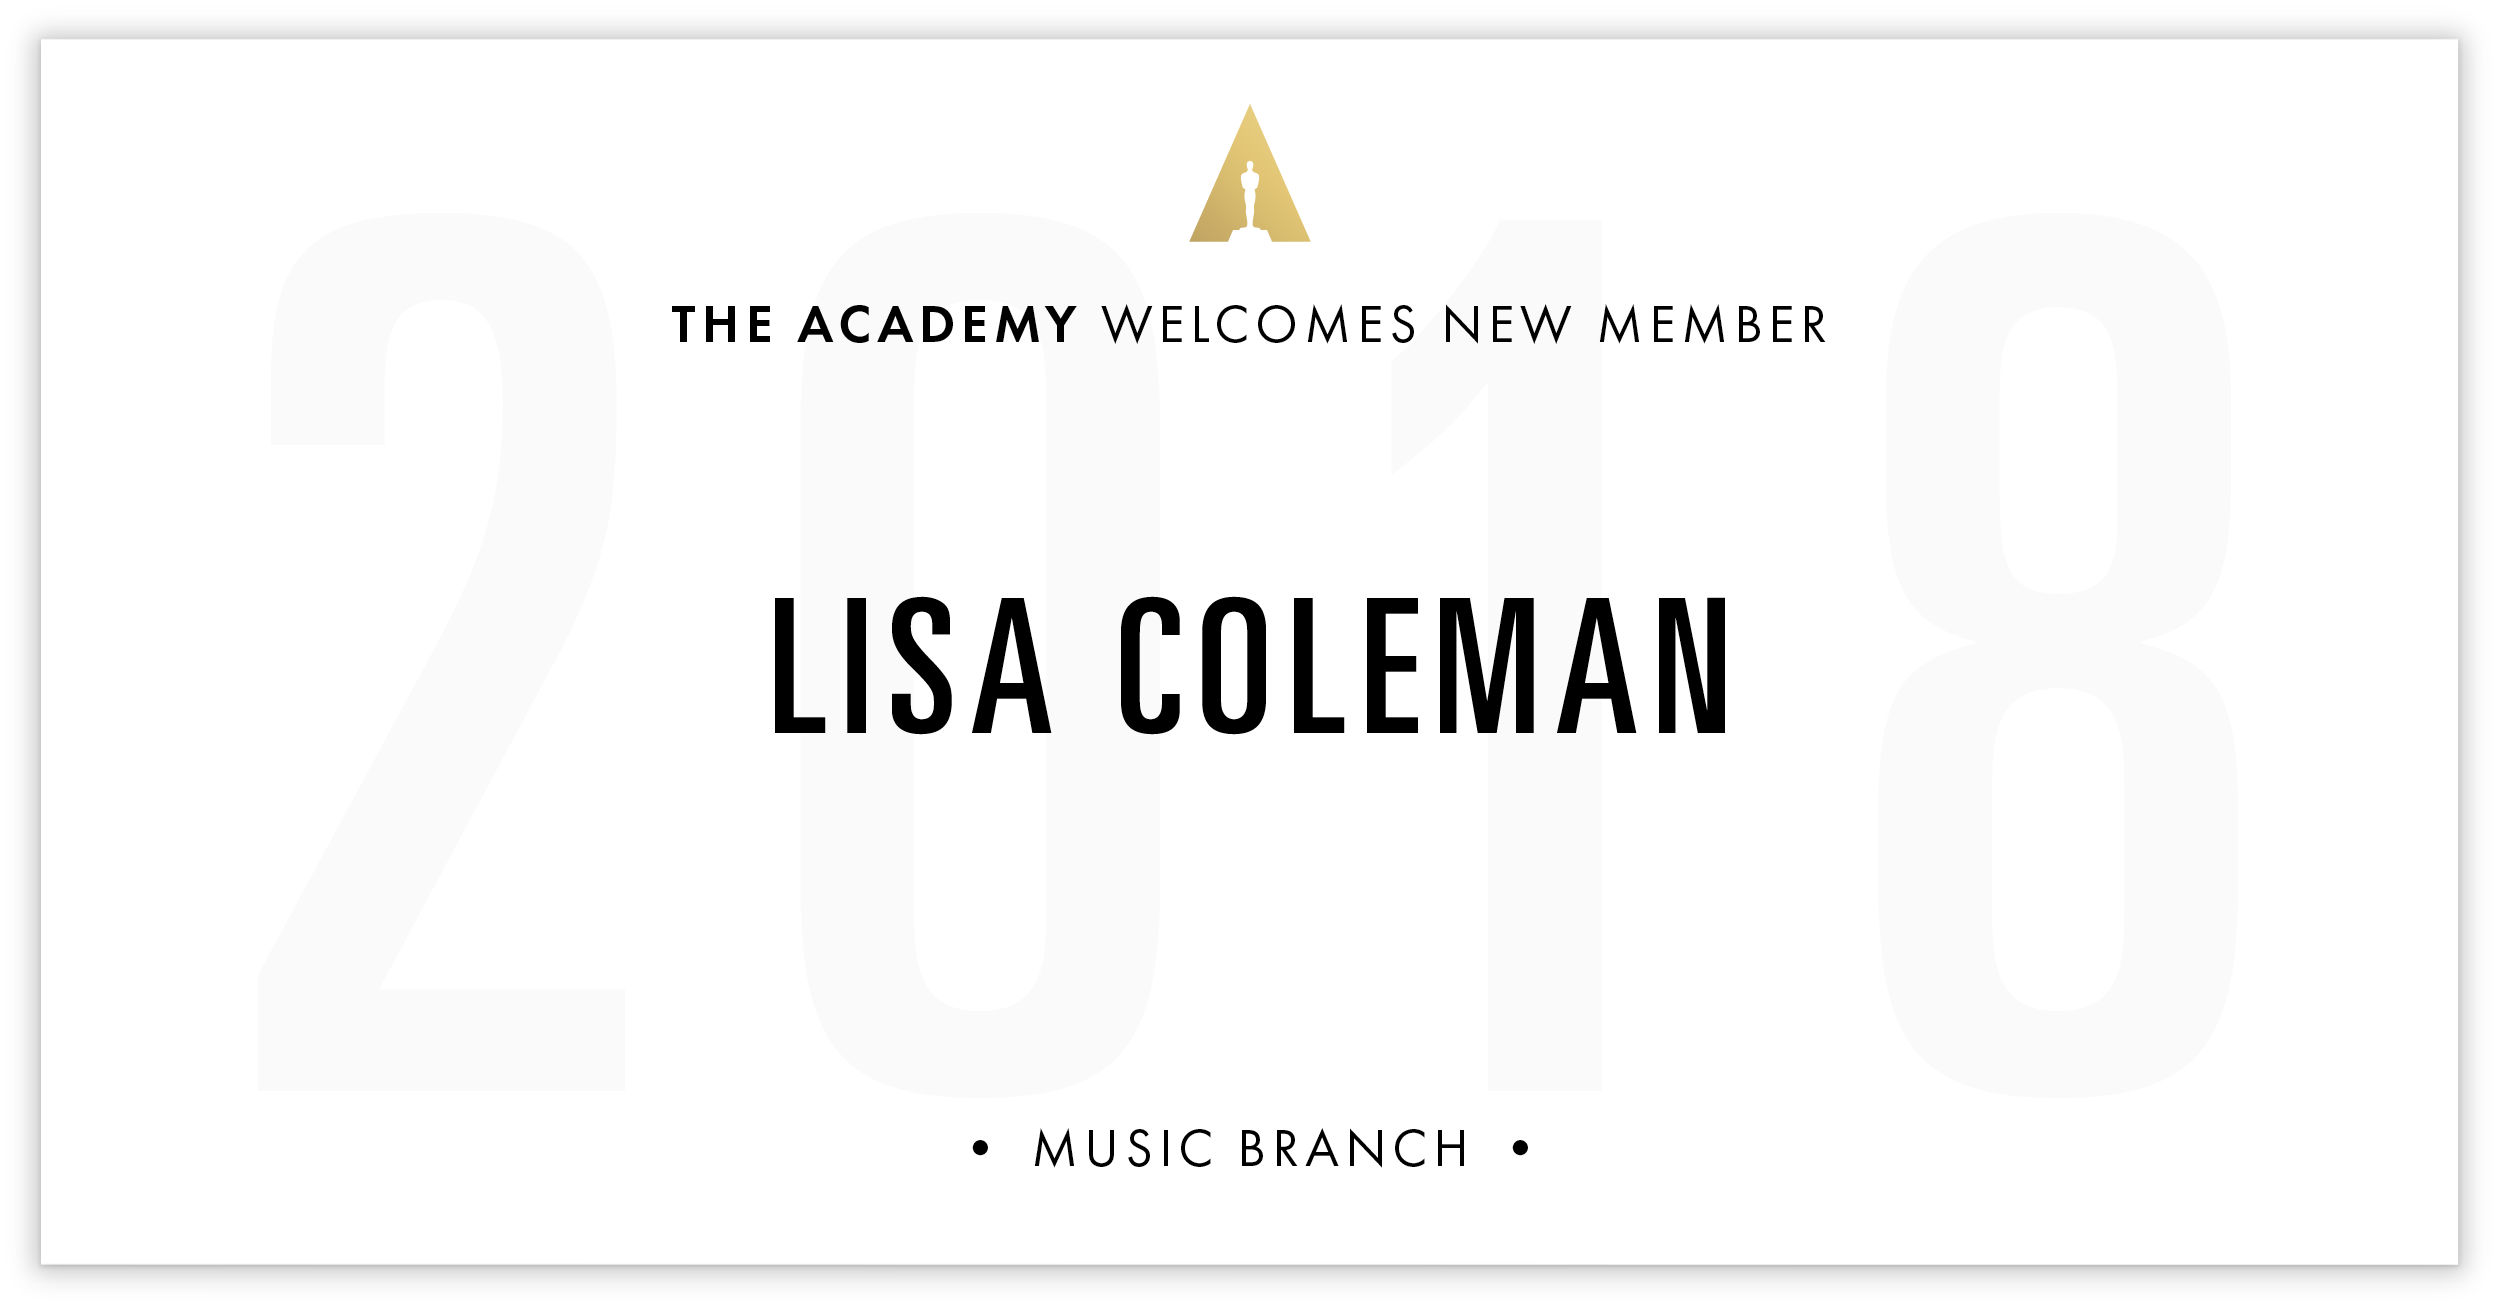 Lisa Coleman is invited!